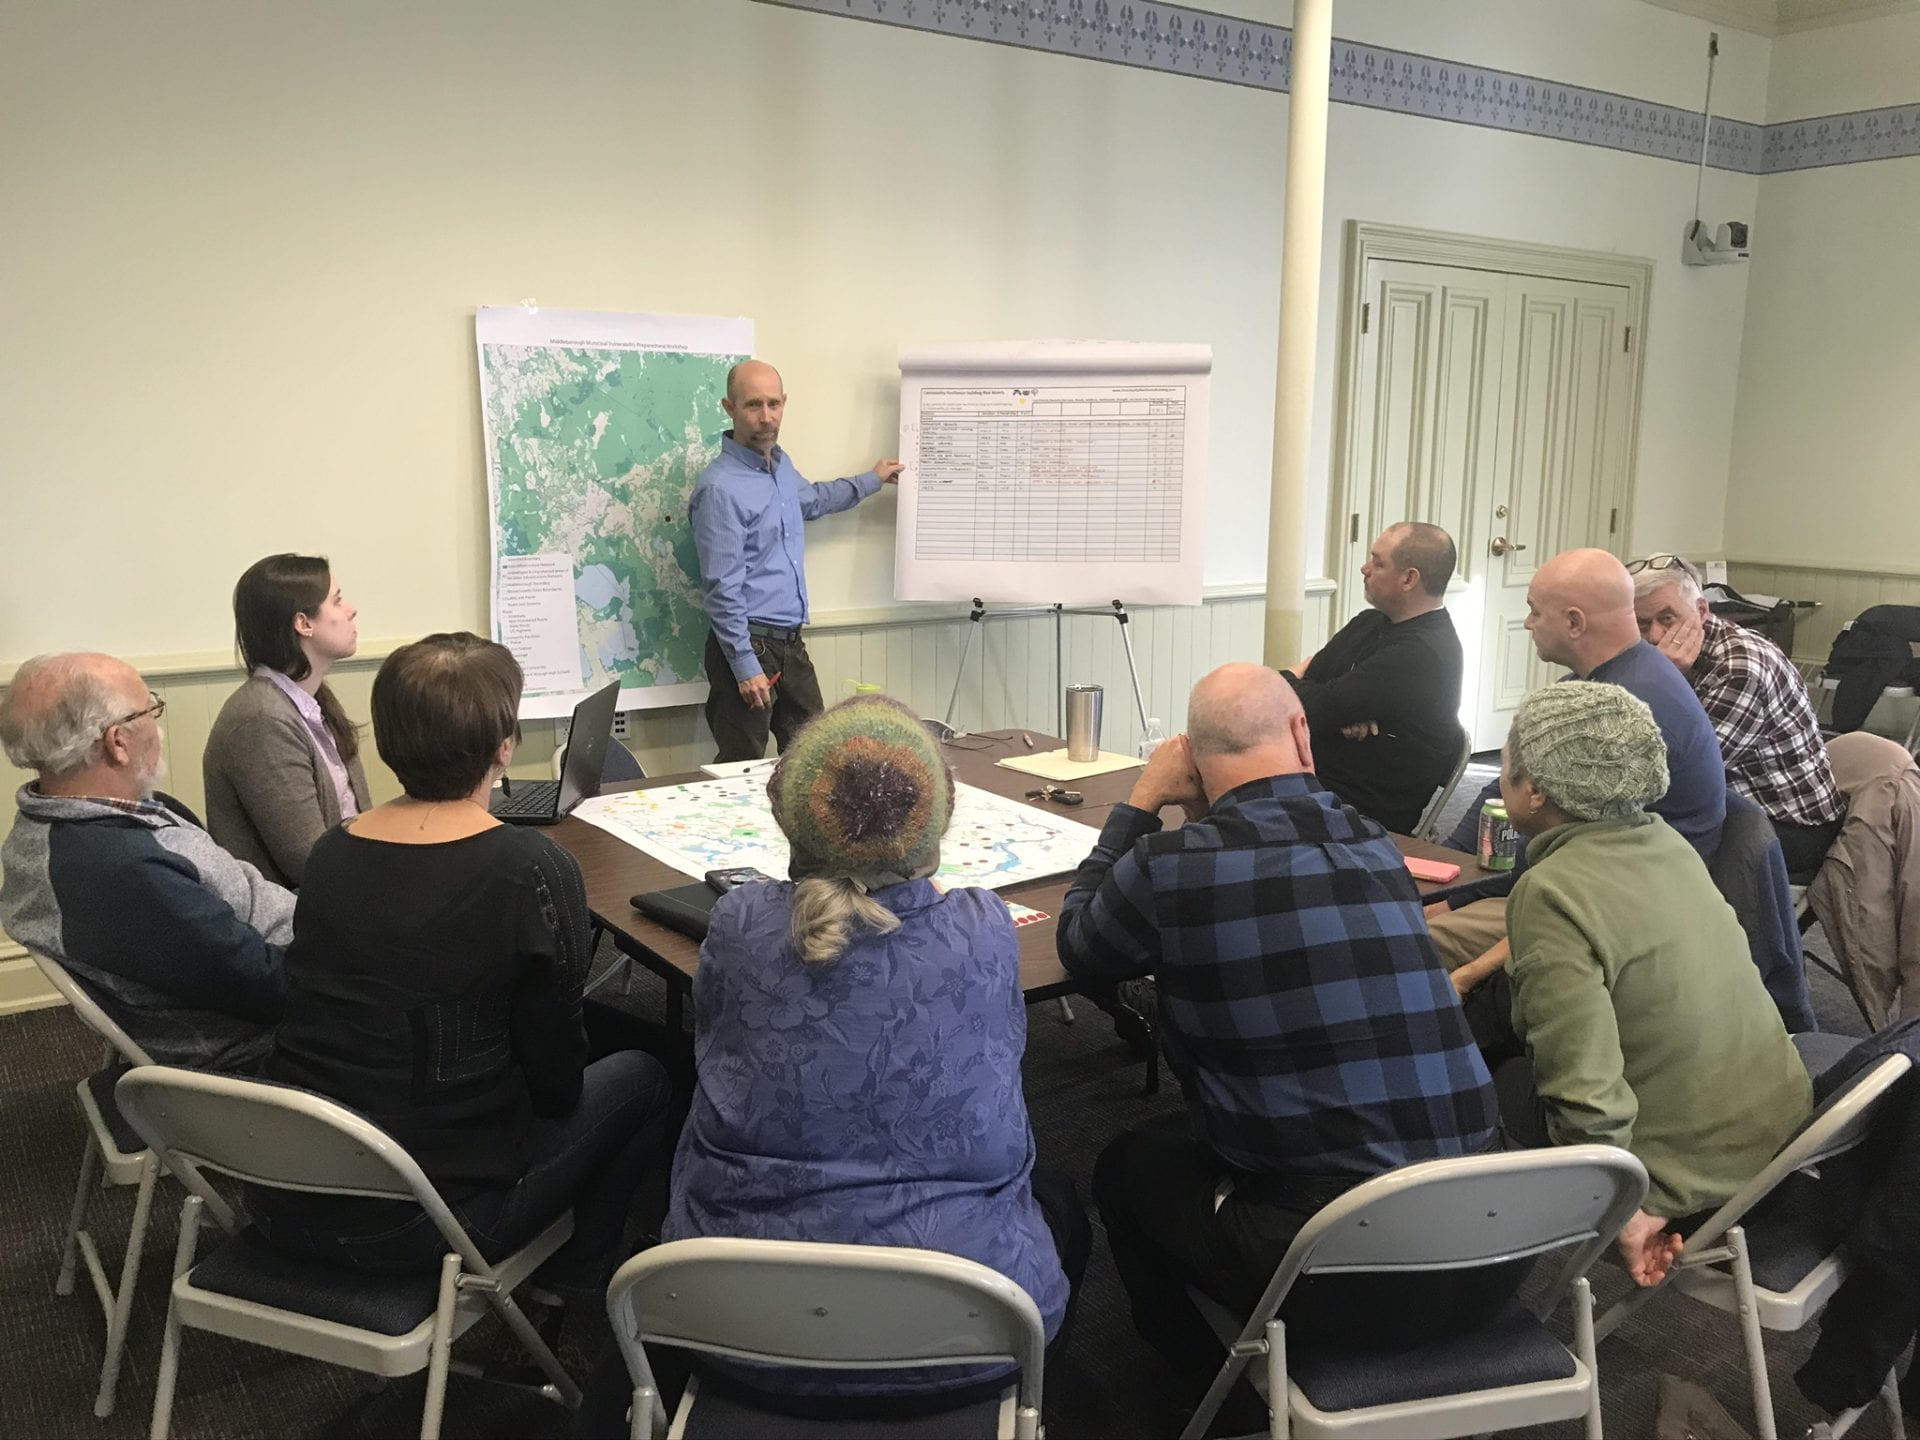 A group of 8 community members and staff from Middleboro MA work with two facilitators to locate climate change related points of concern on a map and describe the issue in a matrix as part of the Municipal Vulnerability Preparedness (MVP) Planning Process